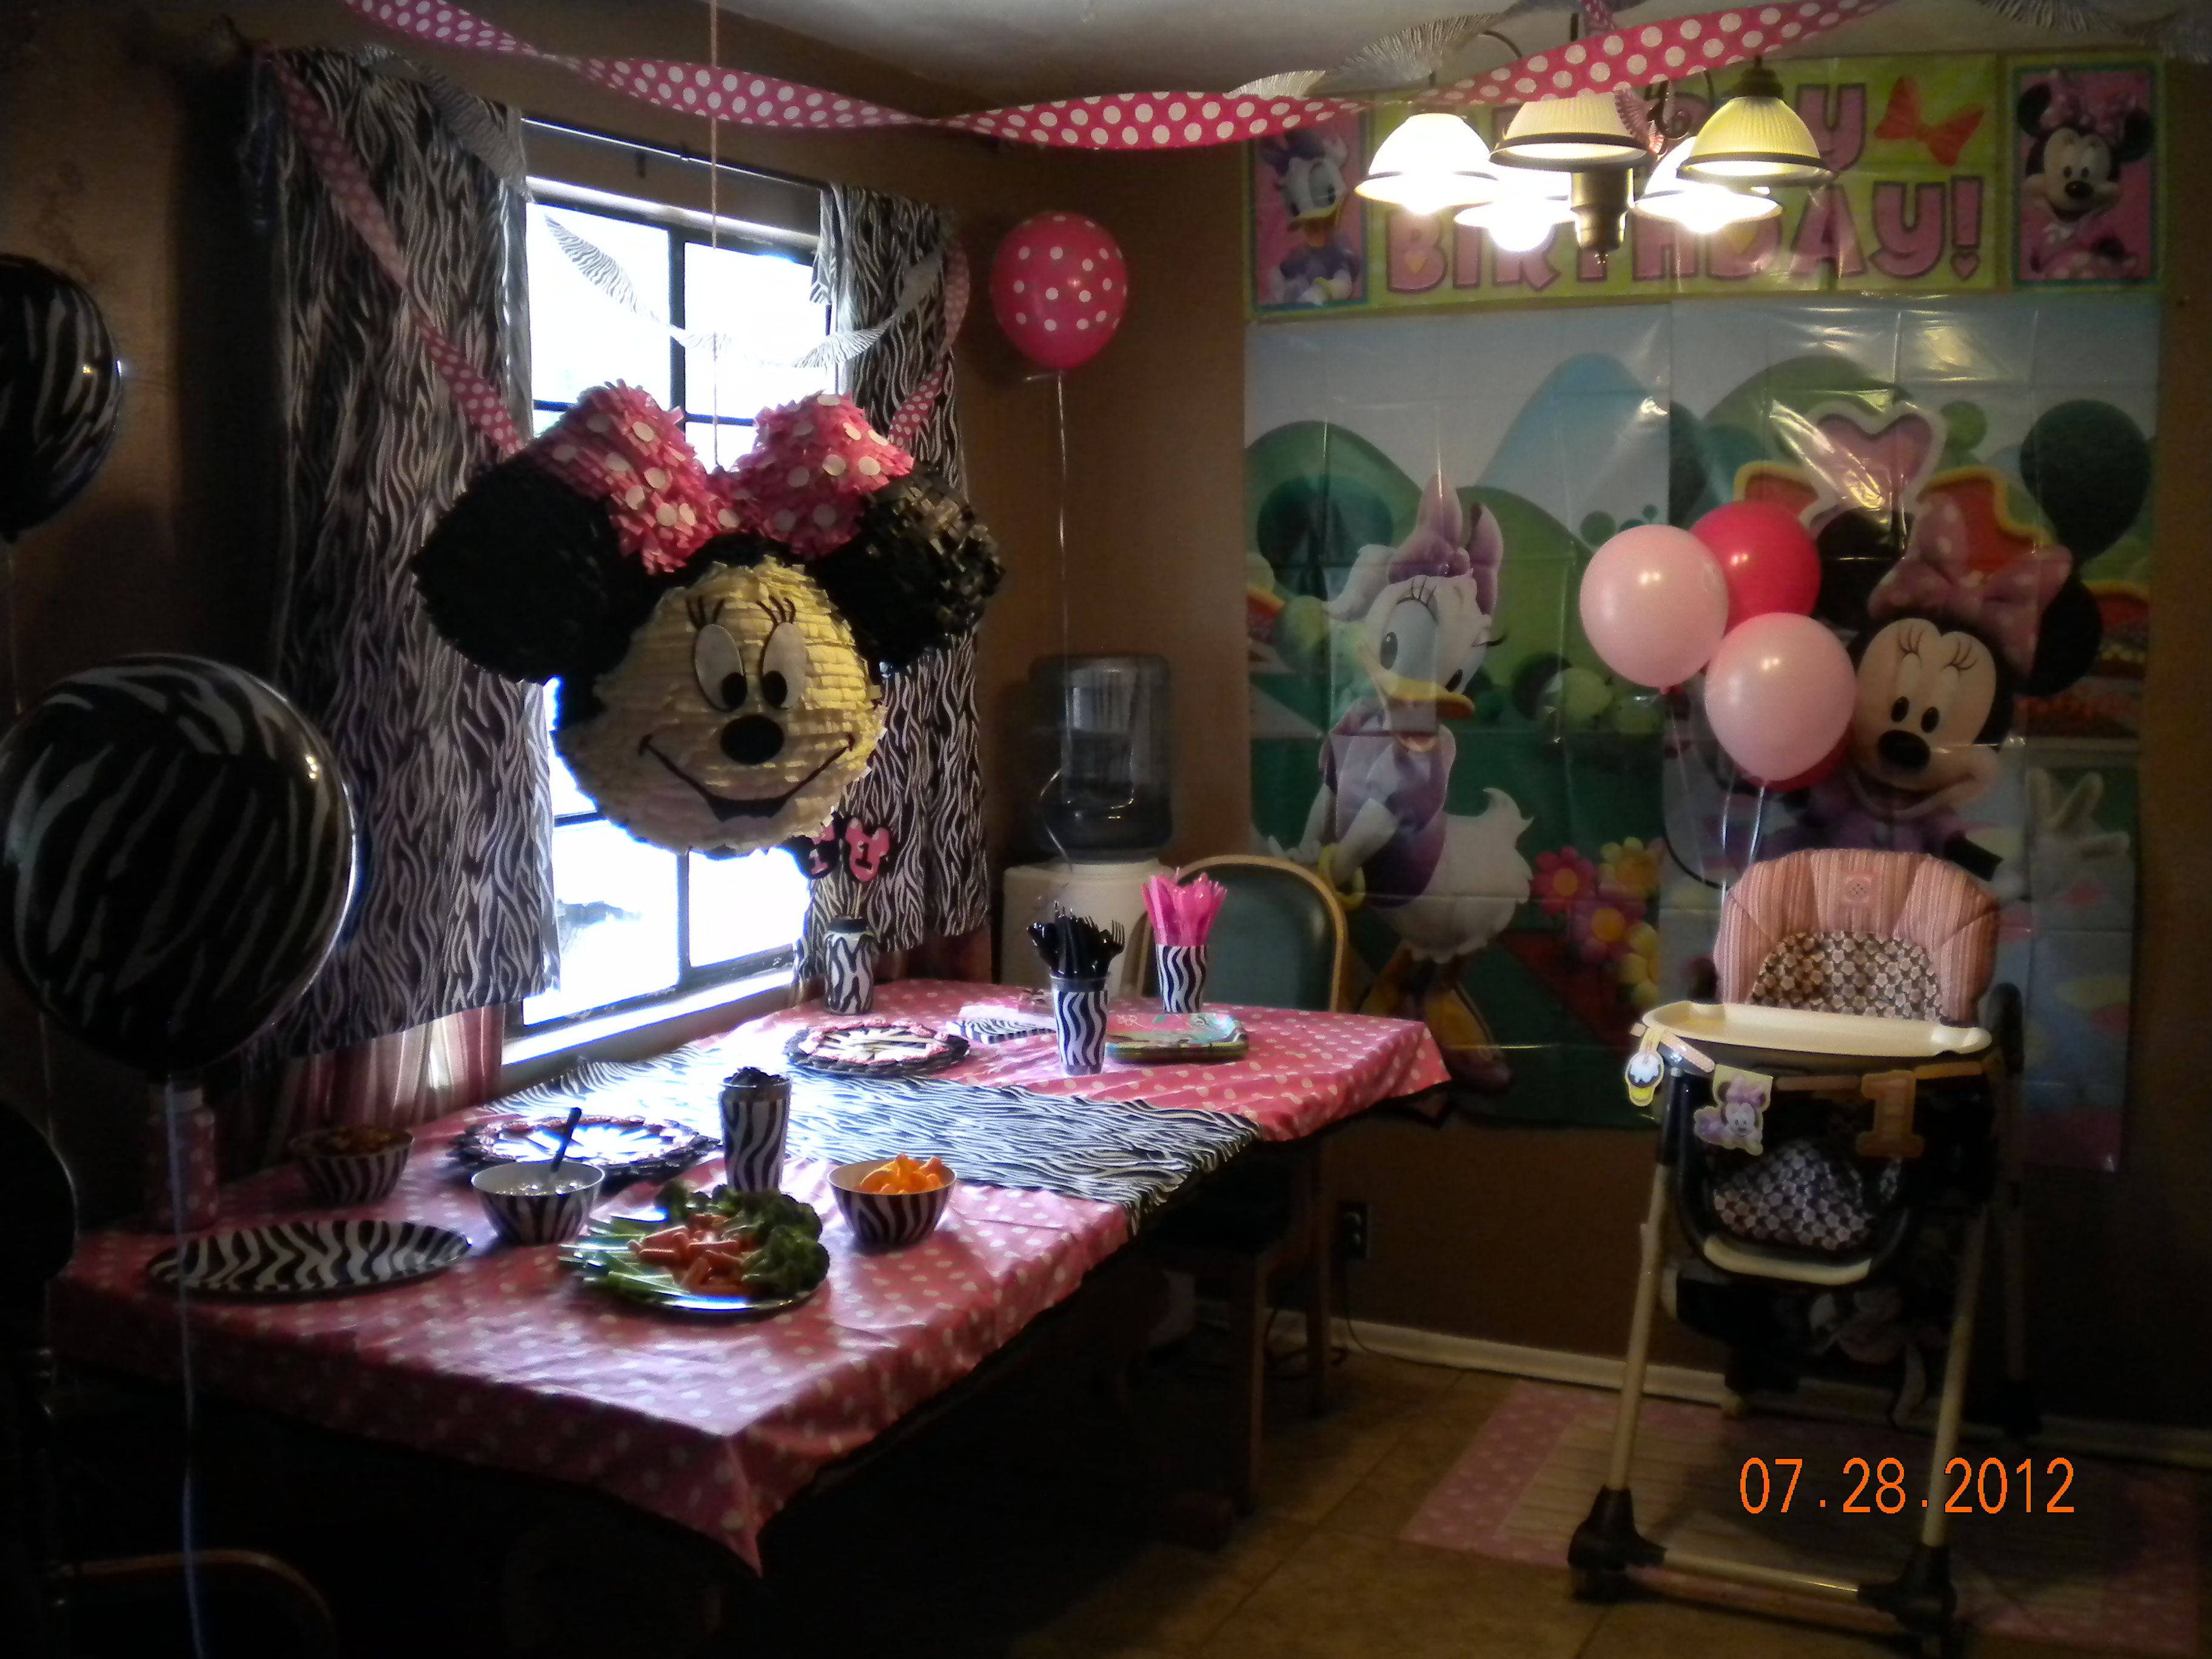 some of the crafts I made for her party